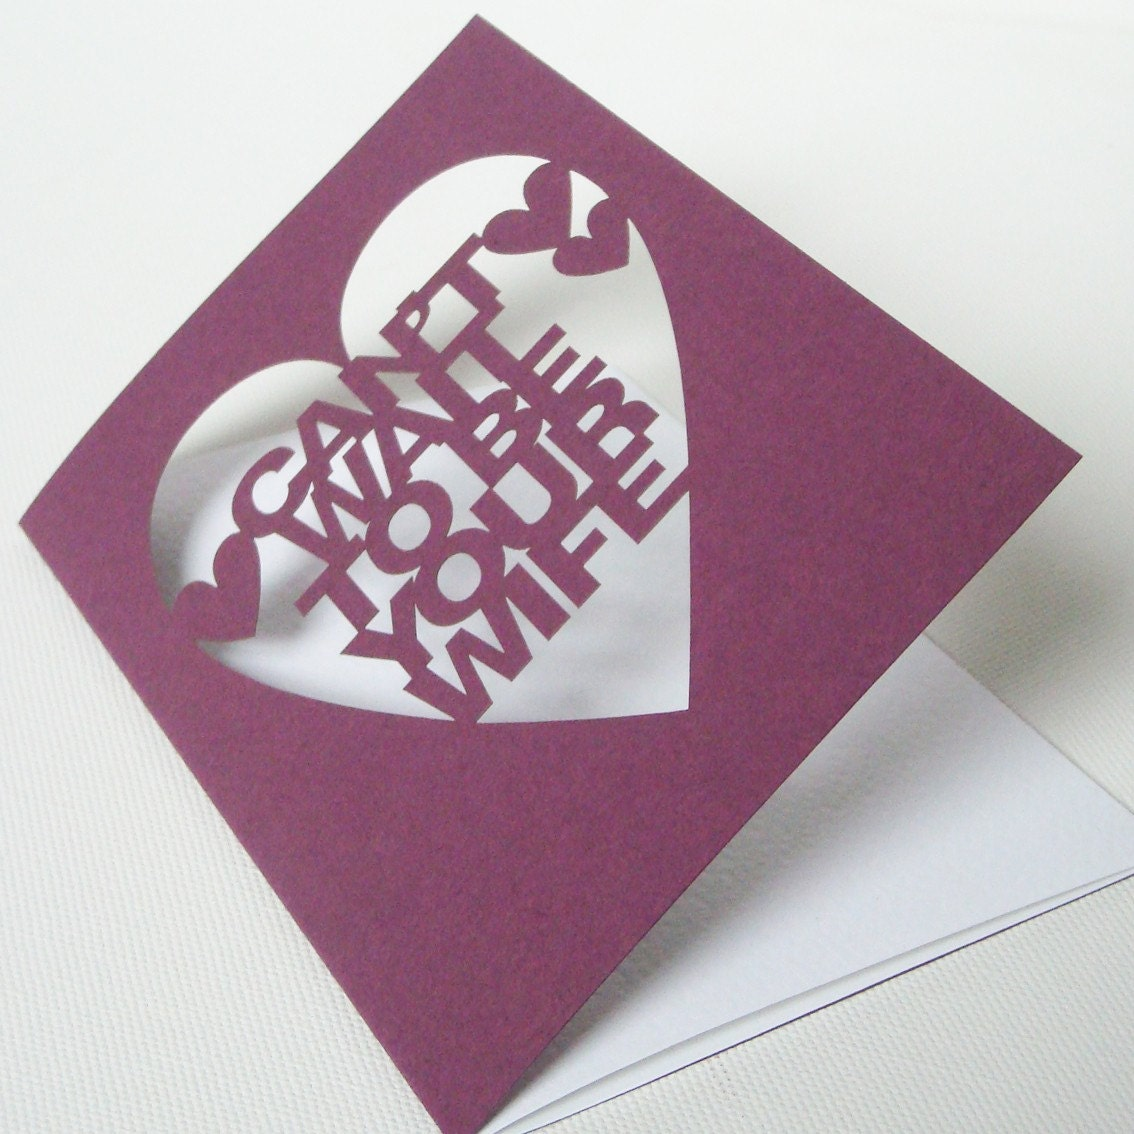 Cut Out Can't Wait to be Your Wife Card Aubergine or White